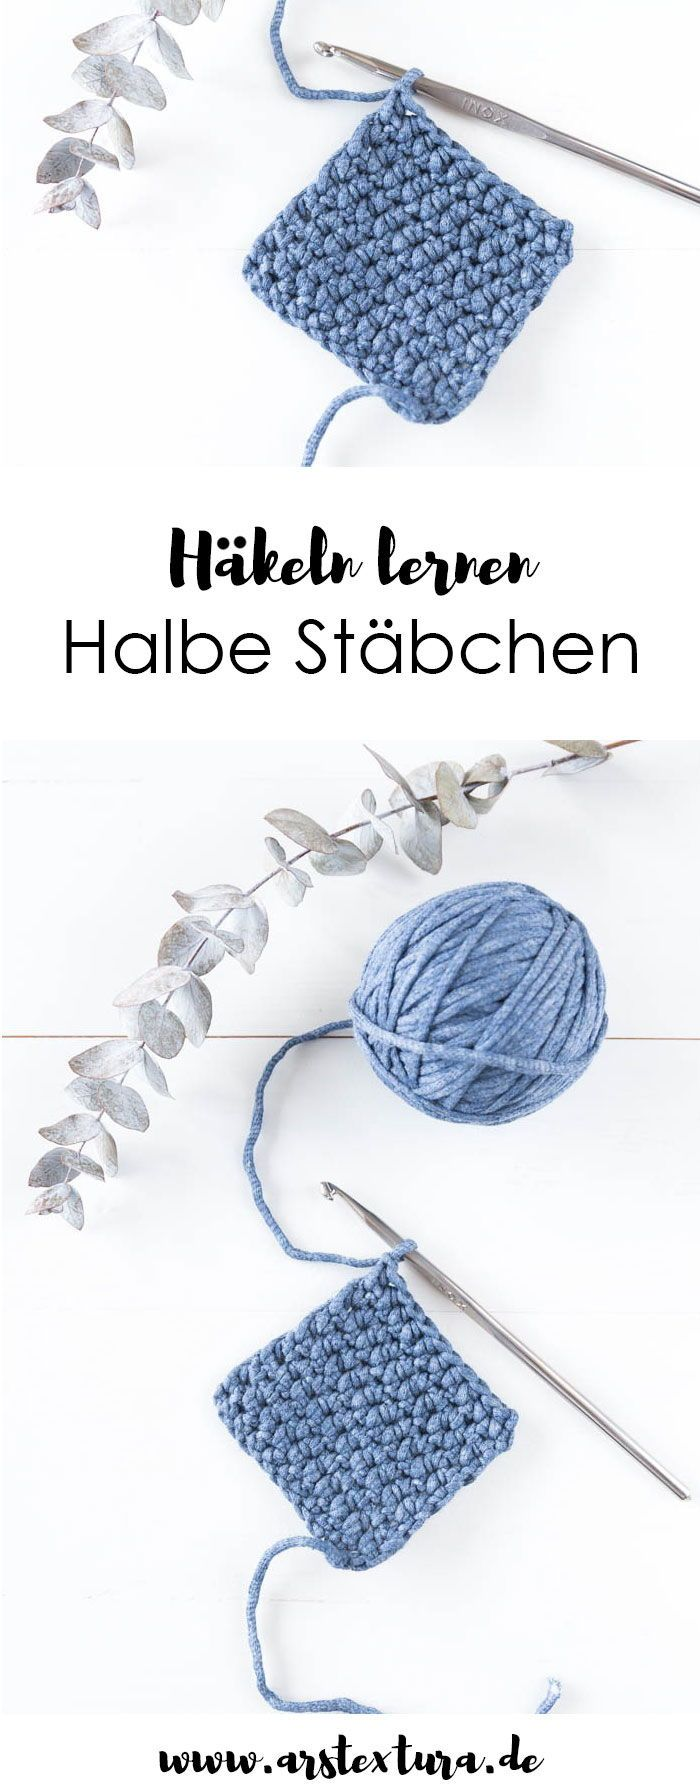 Häkeln Lernen Diy Mit Wolle 3 Pinterest Crochet Instructions